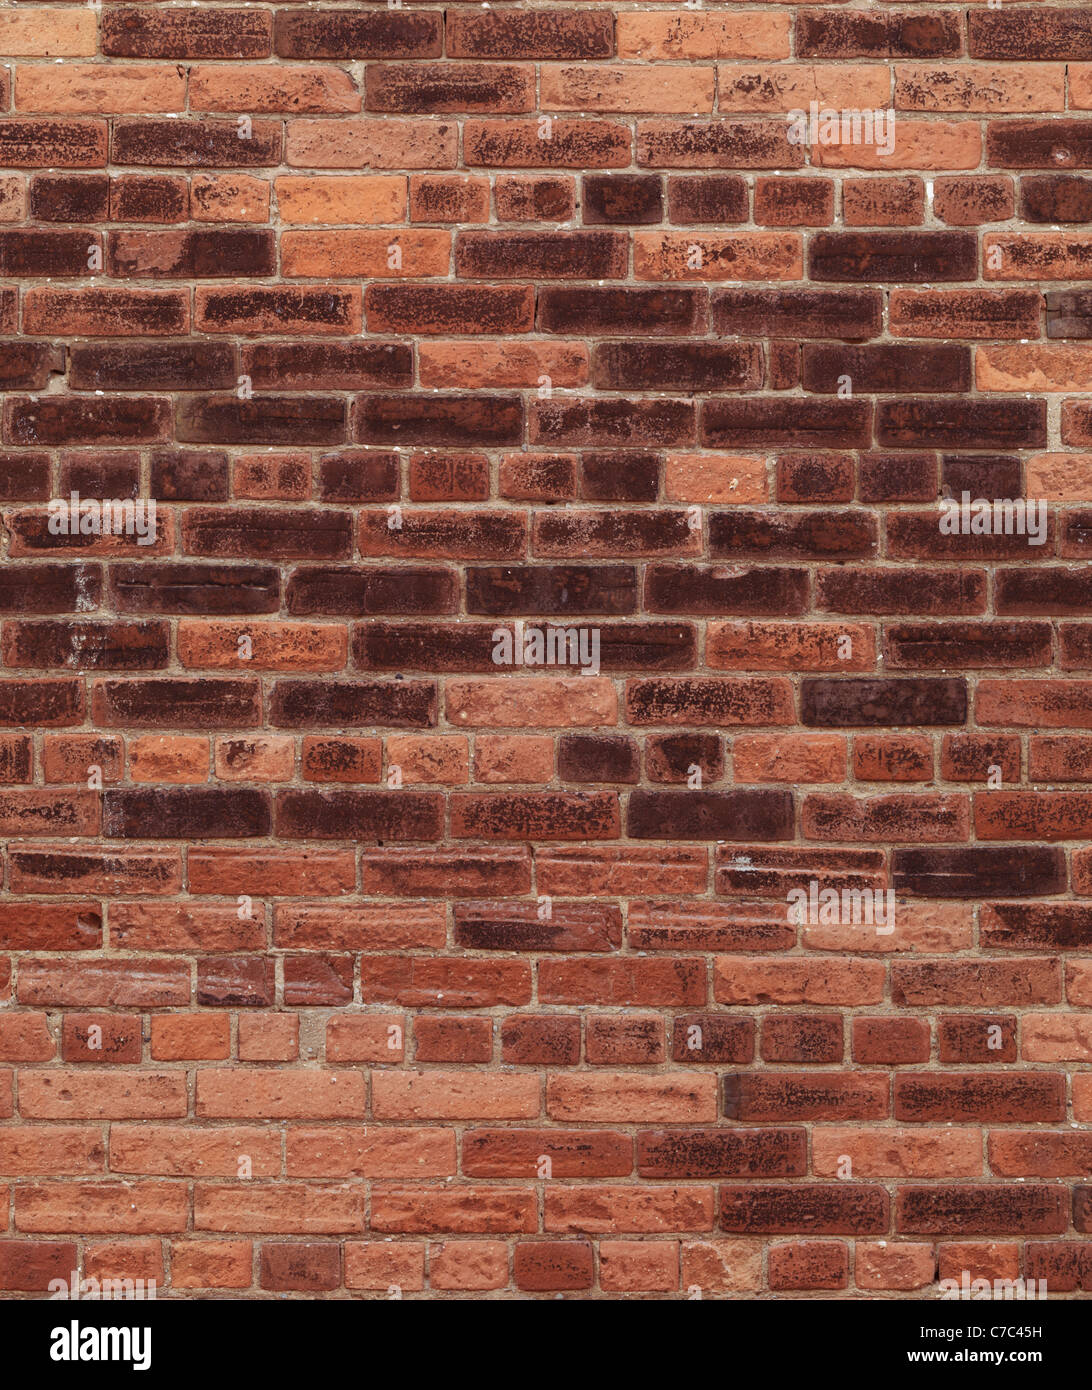 Old red brick wall texture background. High resolution high quality photo. - Stock Image